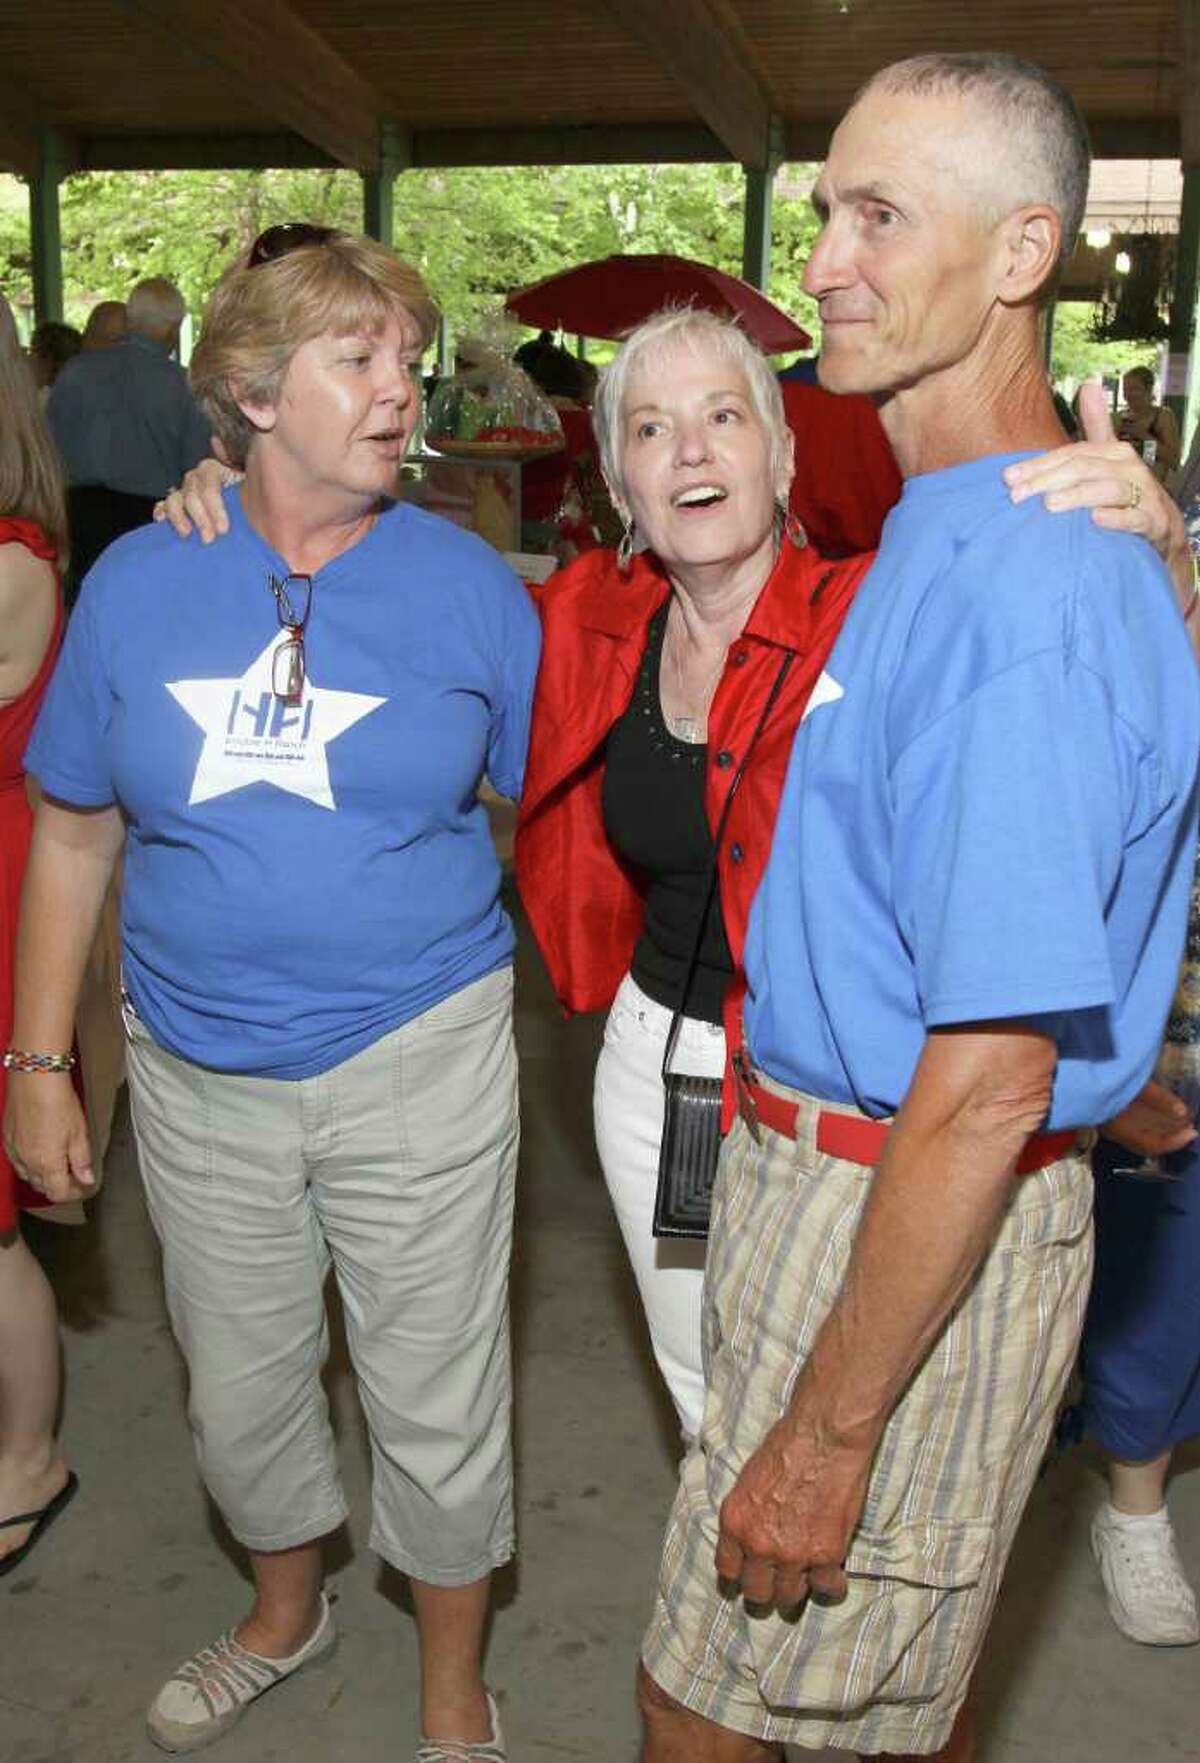 Lake George, NY - July 1, 2011 - (Photo by Joe Putrock/Special to the Times Union) - Double H Ranch board member Sandy Sherman(center) talks with volunteers Pat(left) and Dominick(right) Martino during the Double H Ranch 20th Anniversary Gala.